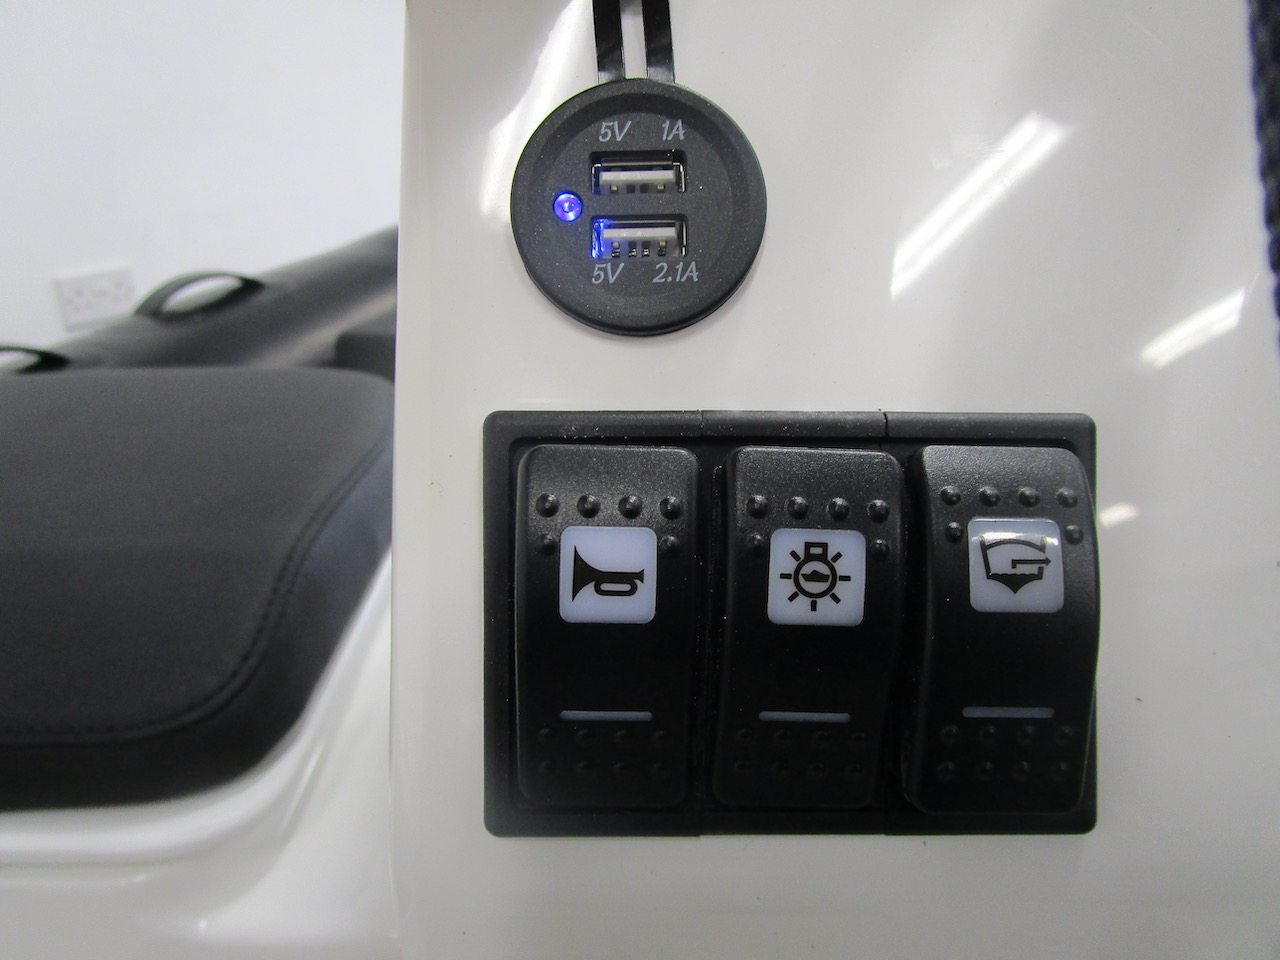 G340N switches and USB chargers